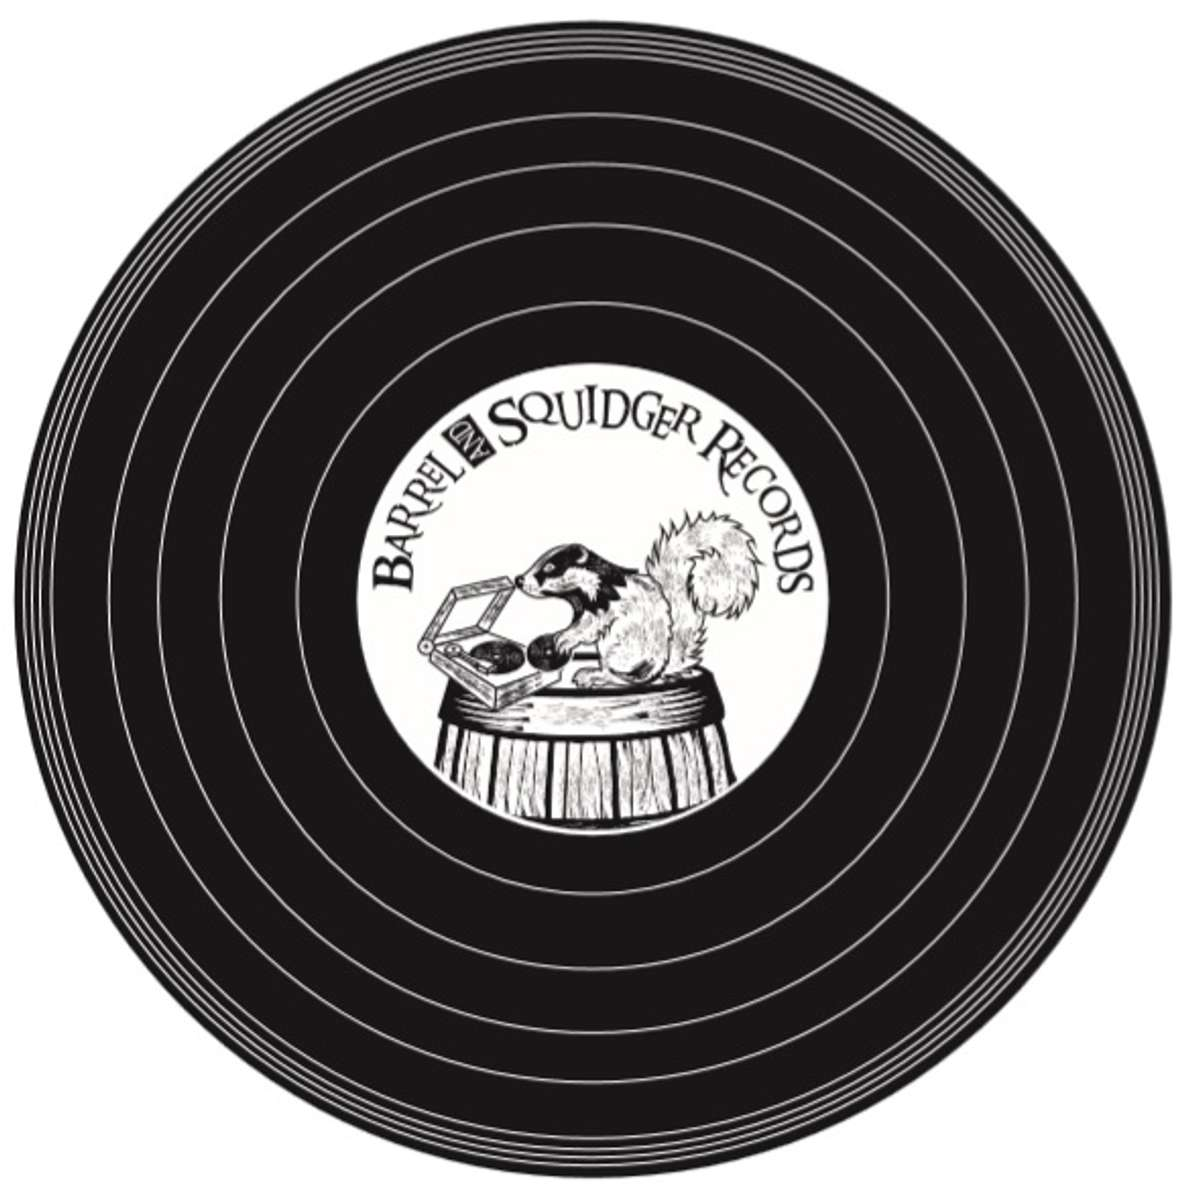 Barrel And Squidger Records - LP-sized Tote Bag - Barrel And Squidger Records